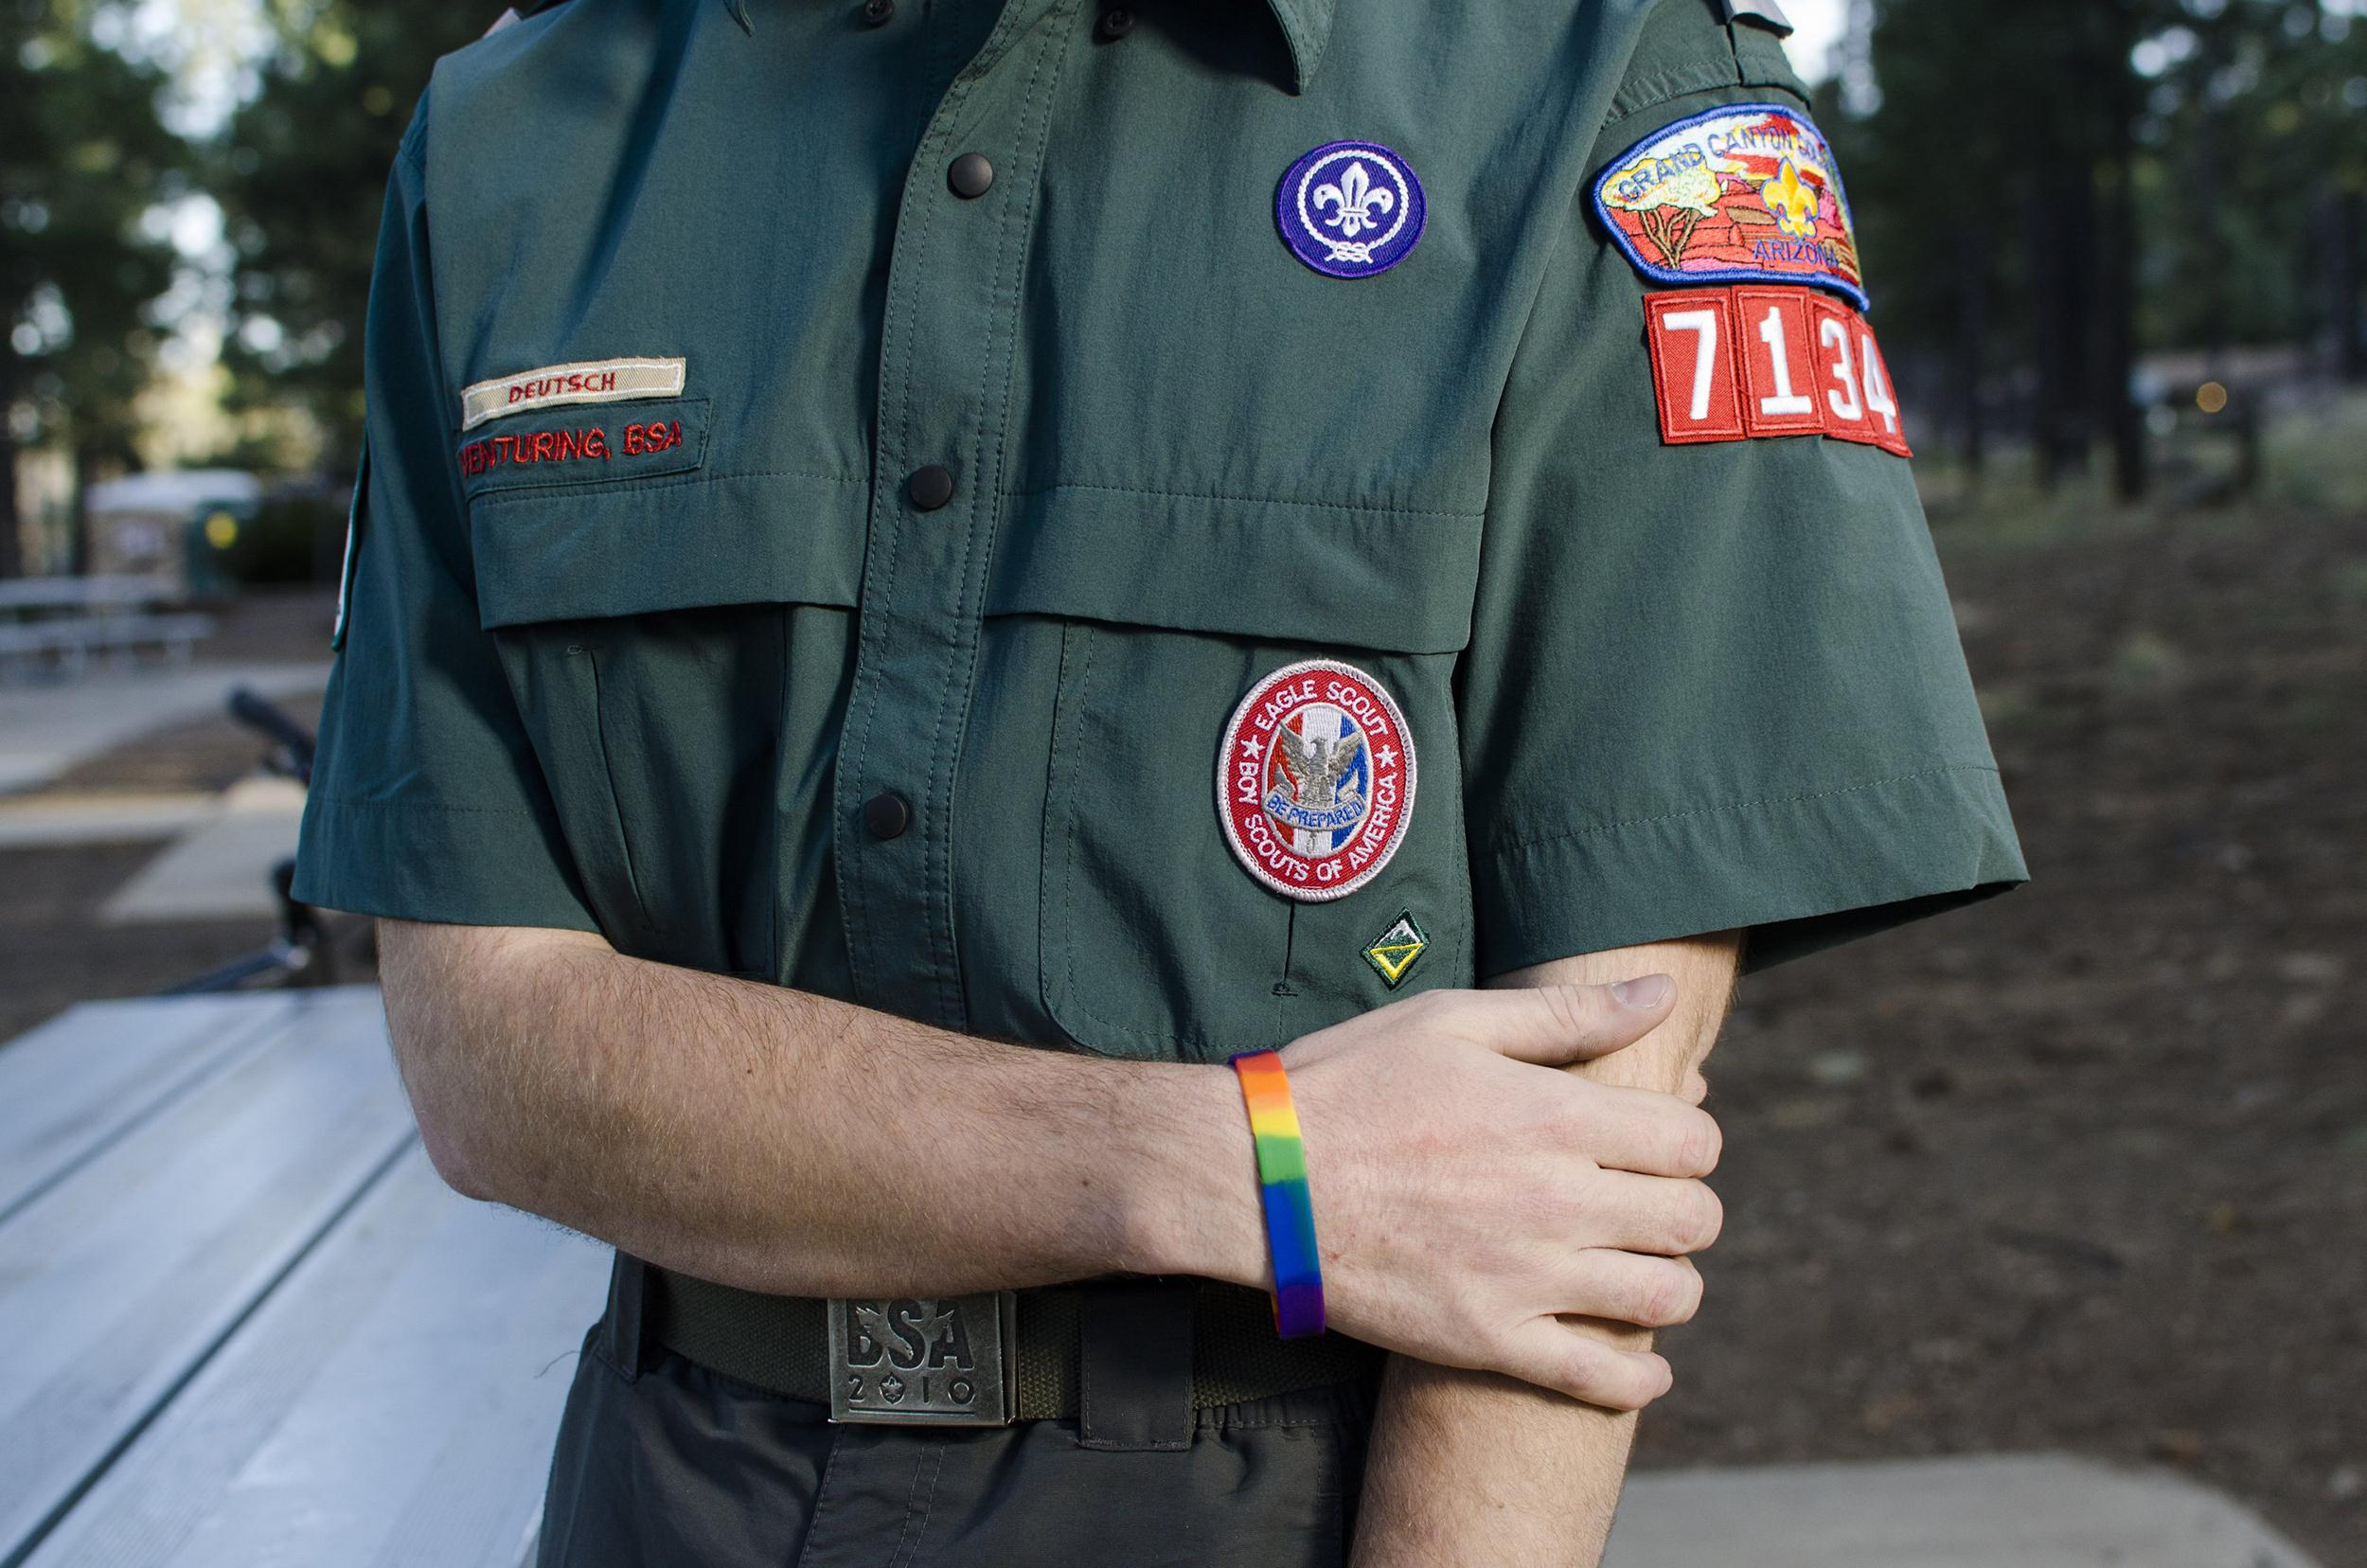 Image: Garrett Bryant in his Boy Scout uniform